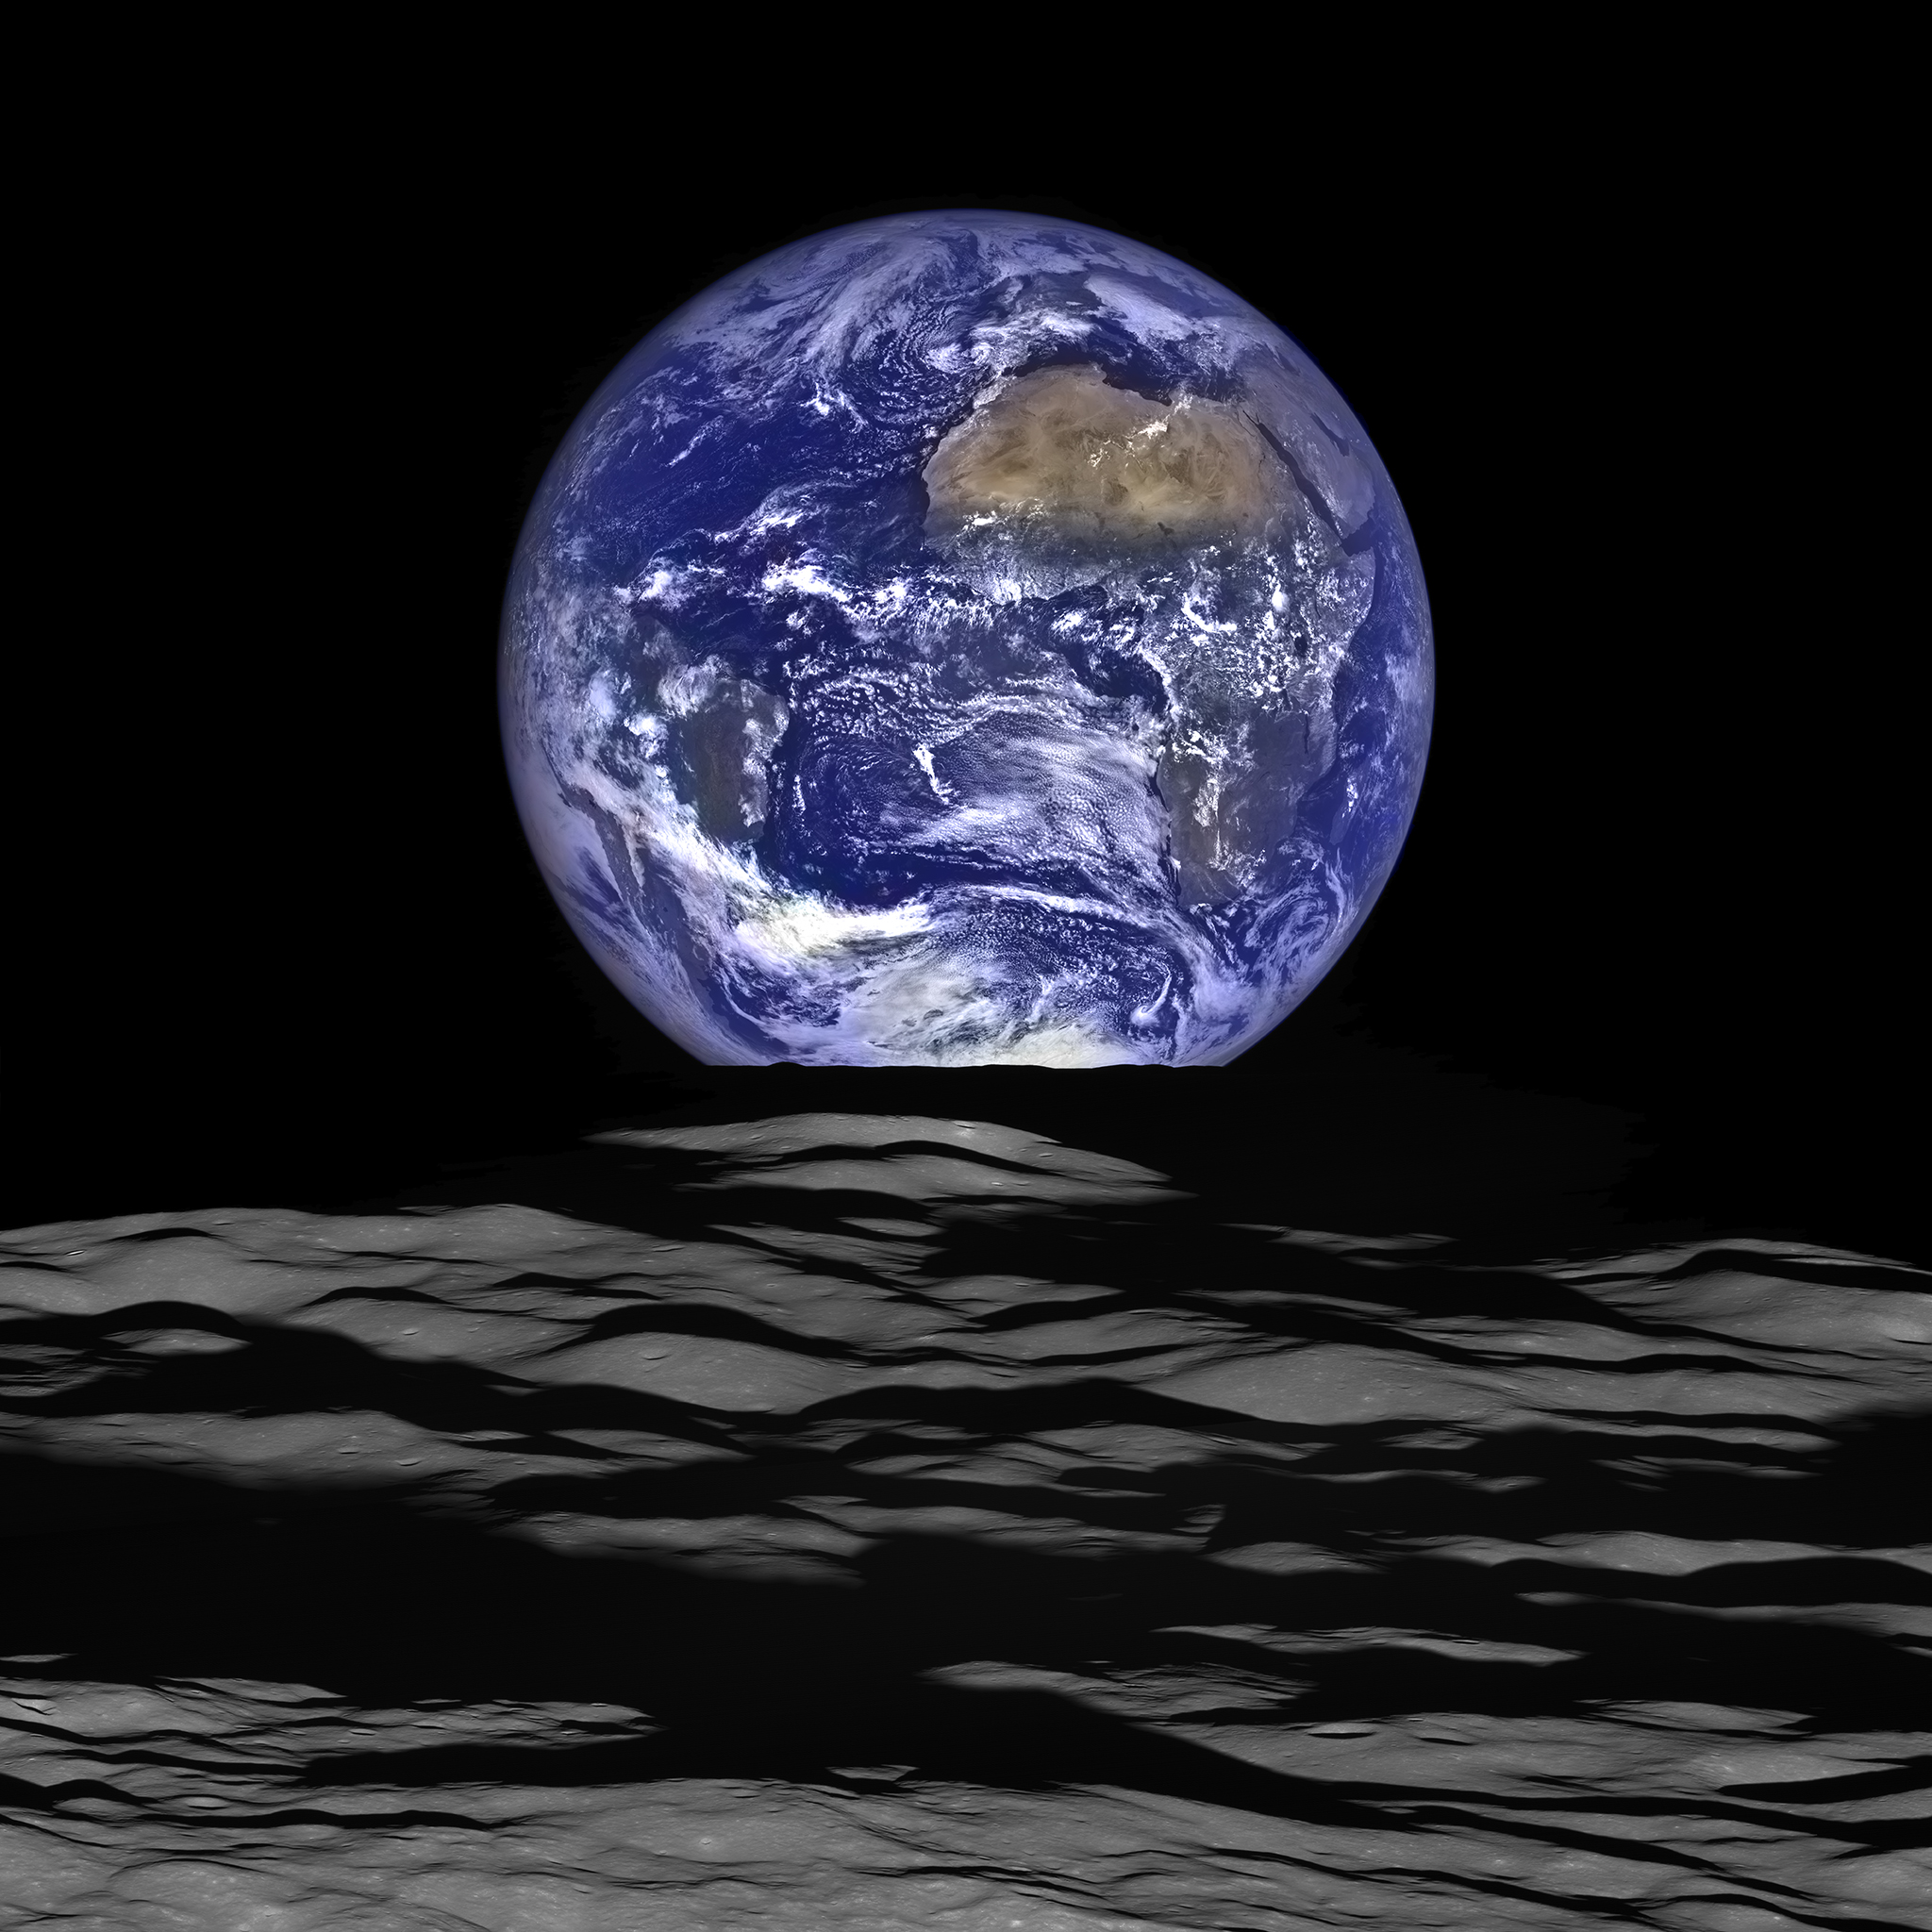 NASA's Lunar Reconnaissance Orbiter (LRO) recently captured a unique view of Earth from the spacecraft's vantage point in orbit around the moon. Image Credit: NASA/Goddard/Arizona State University